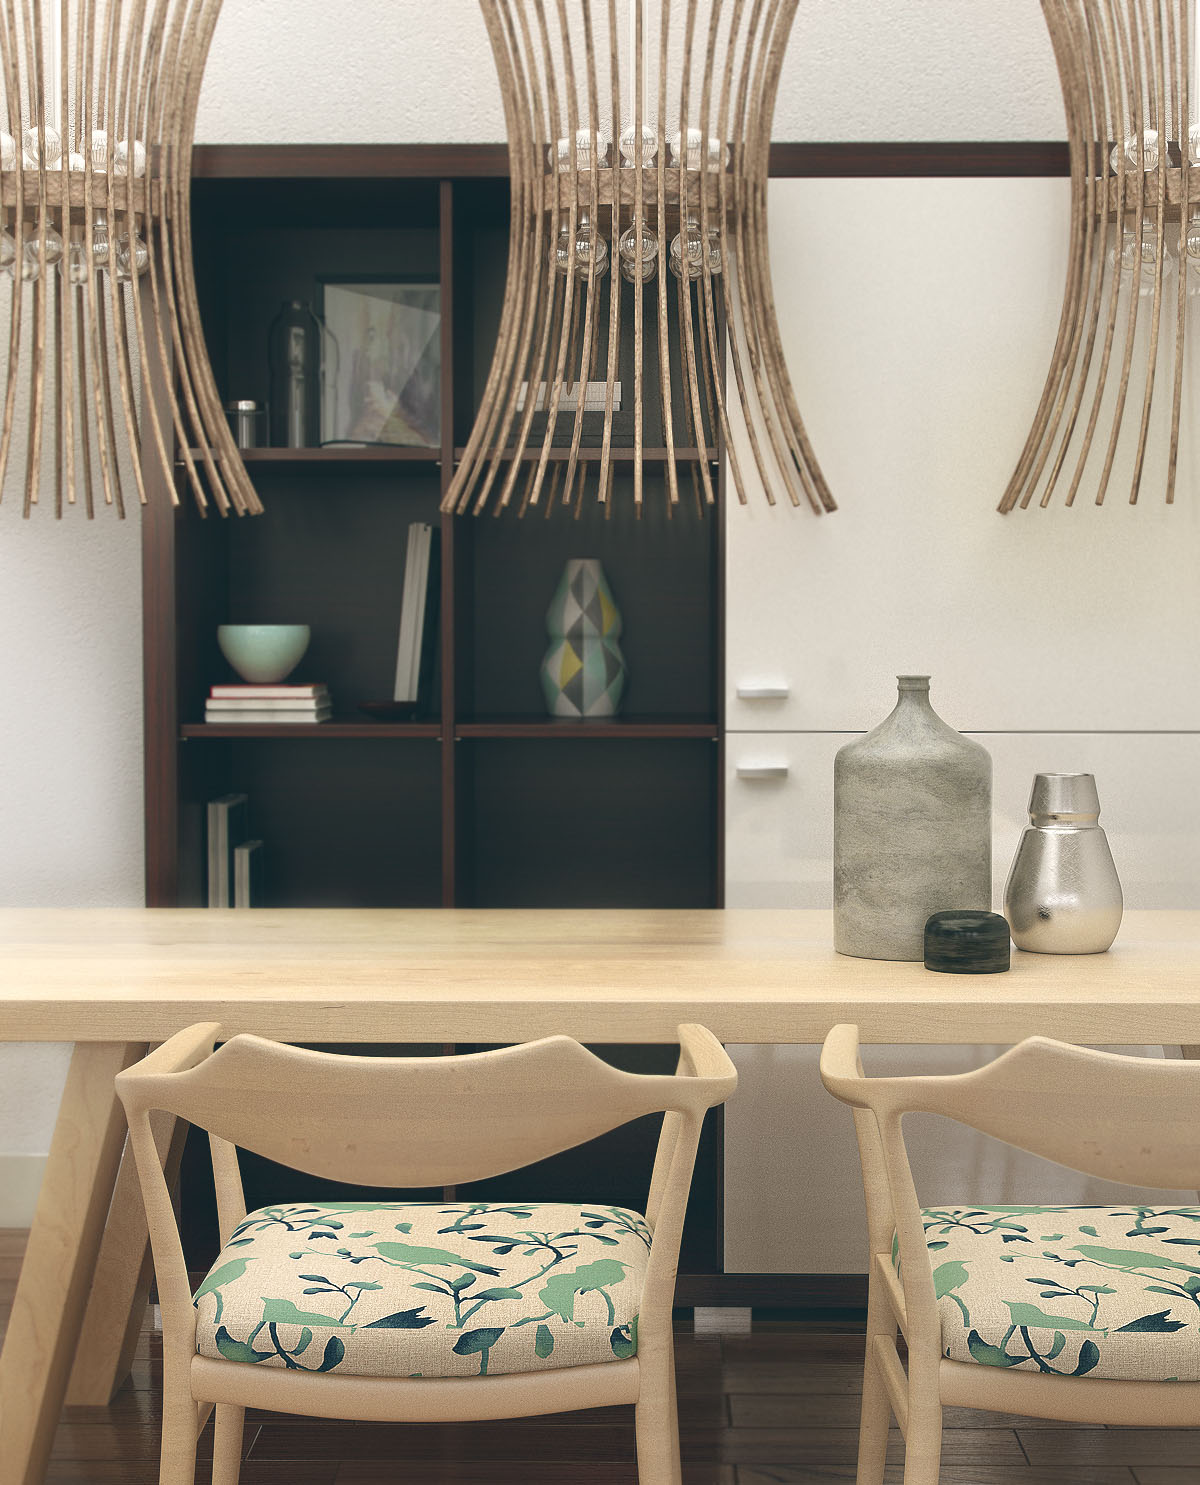 table and chairs_architectural visualisation 3d render copy.jpg